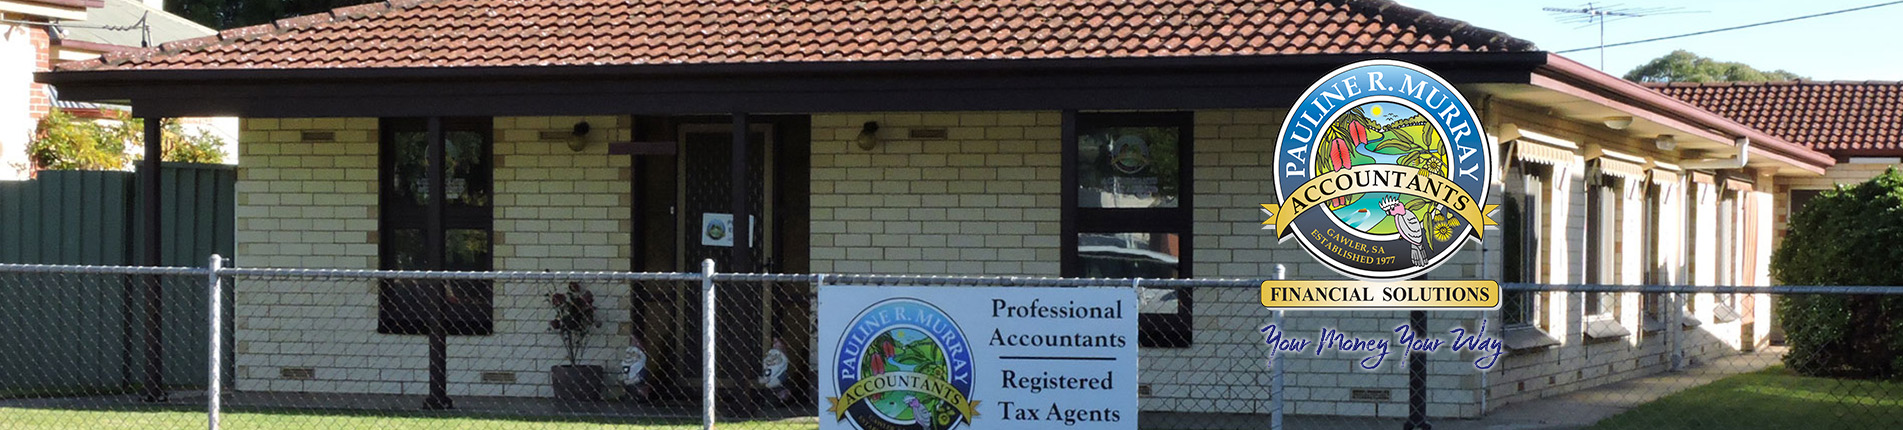 pauline-r-murray-accountants-banner-01-01